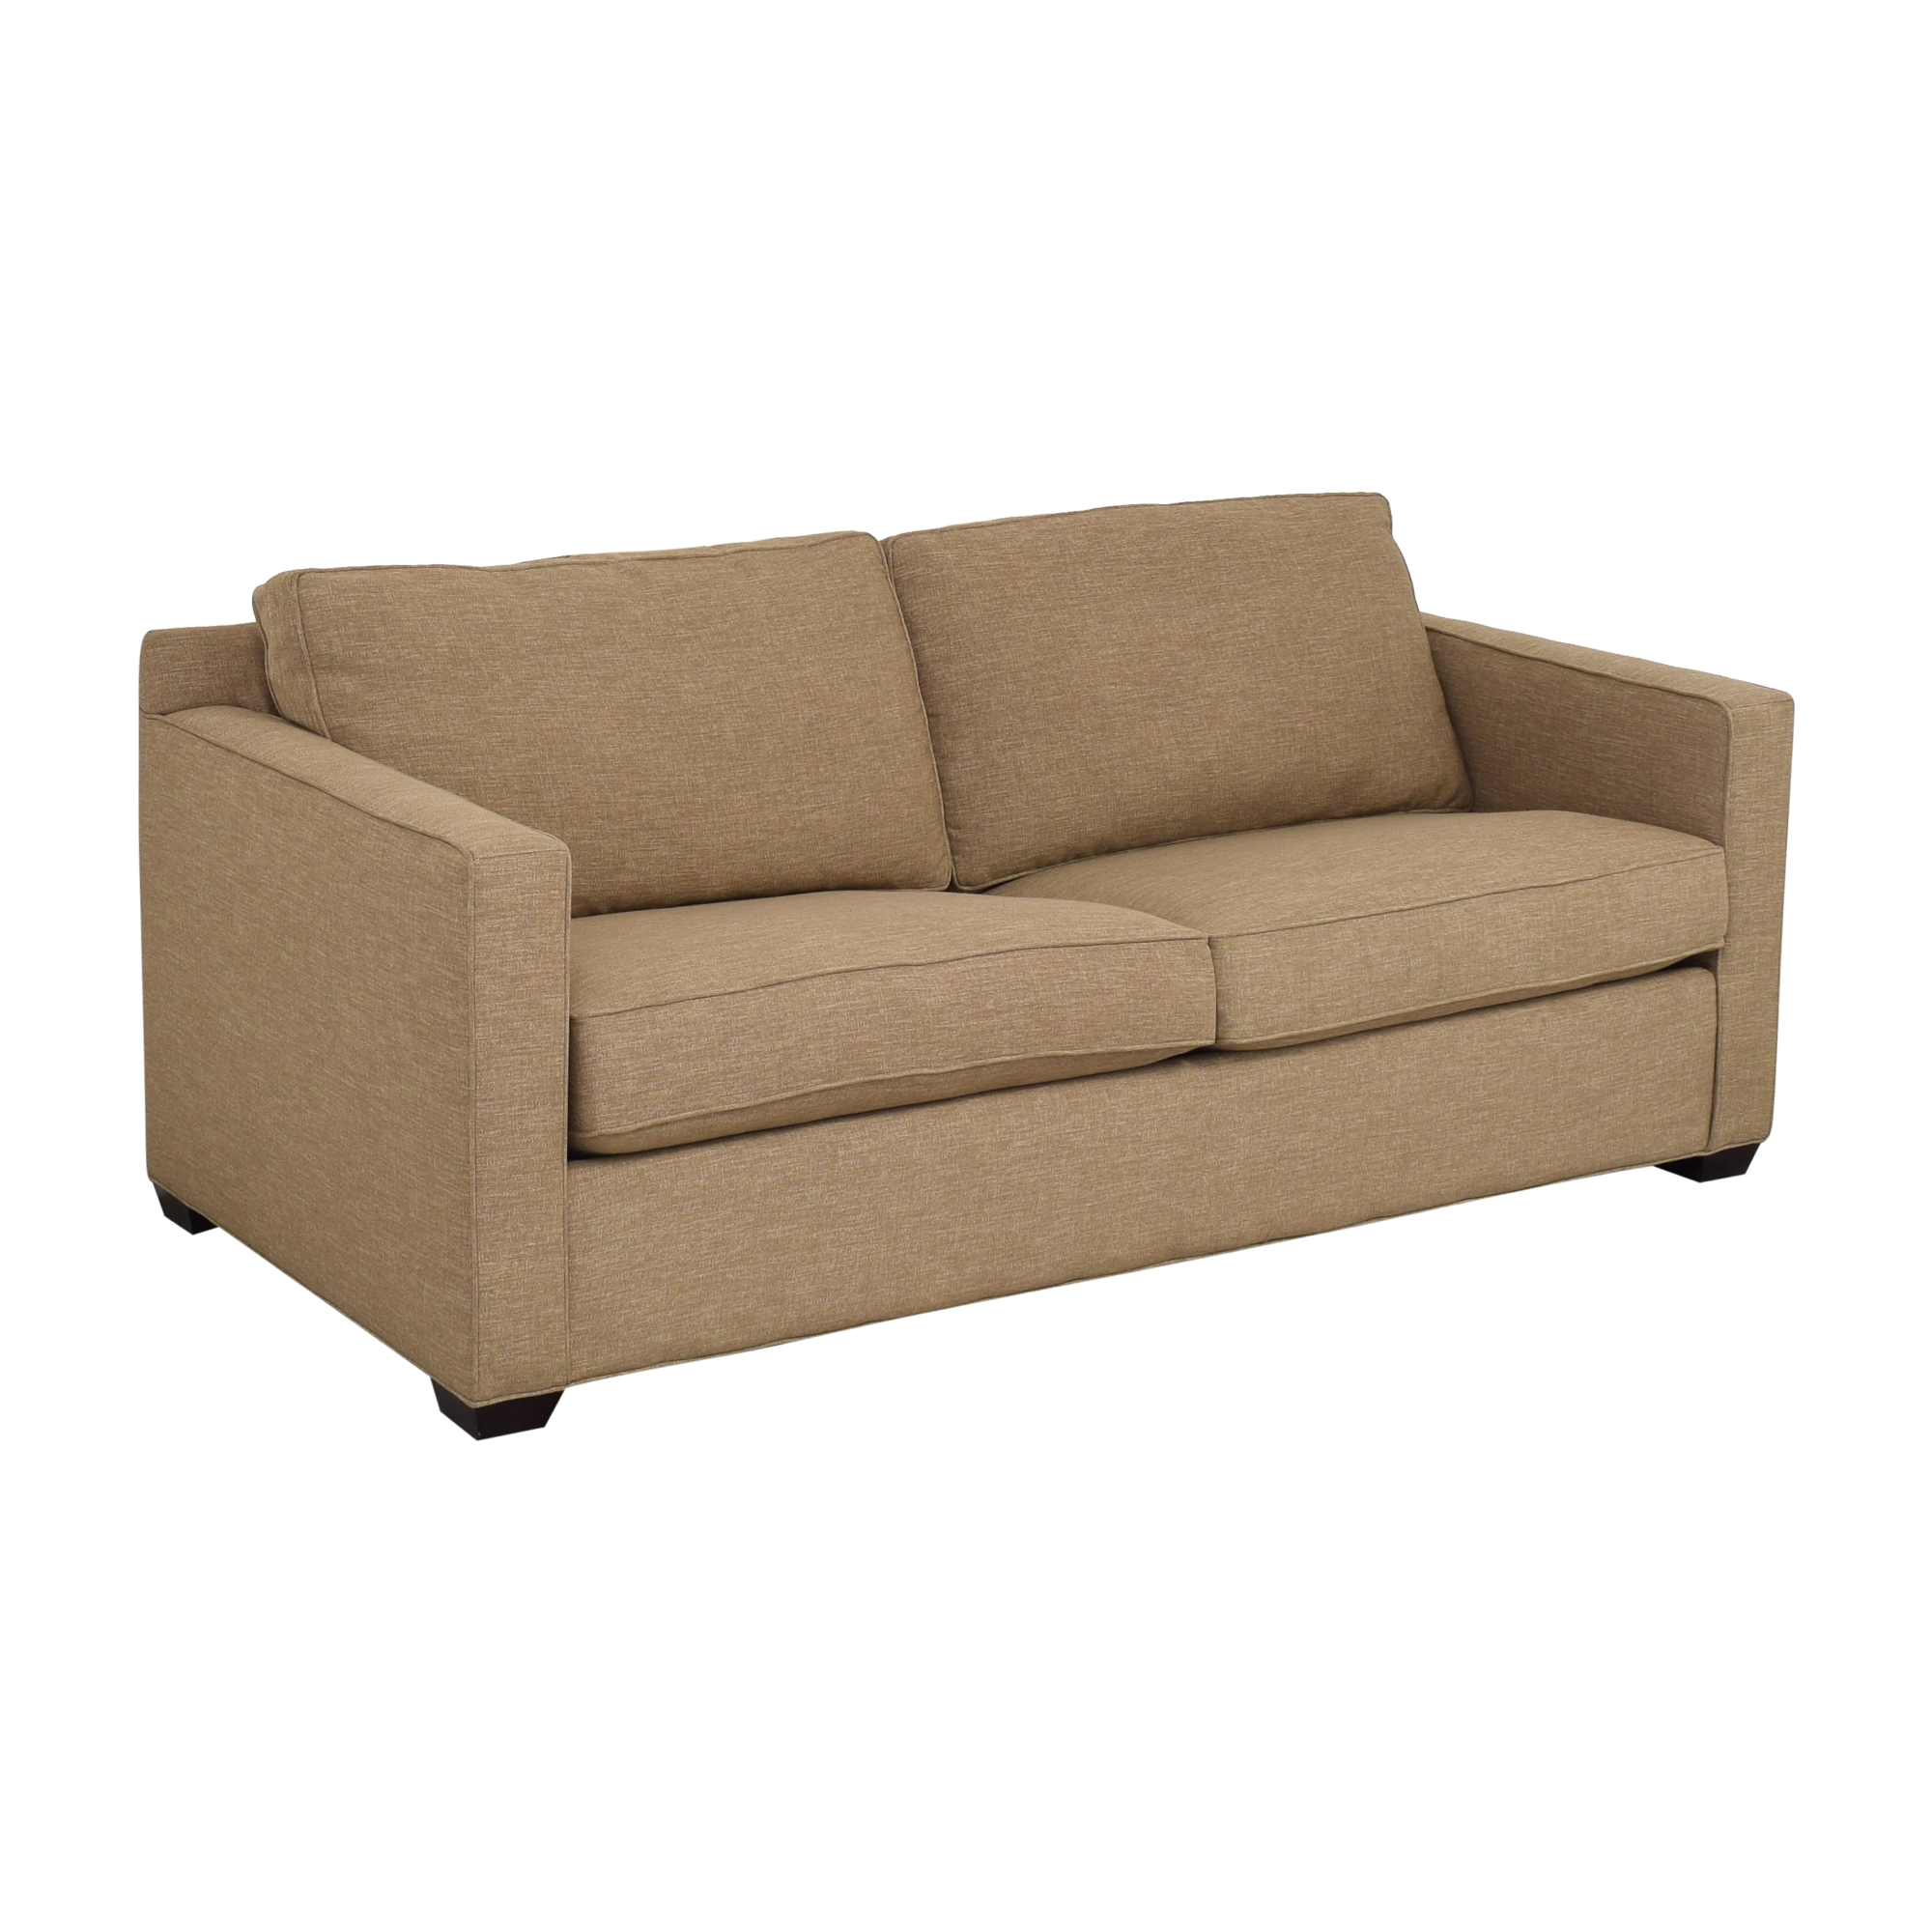 Crate & Barrel Crate & Barrel Davis Full Sleeper Sofa Sofa Beds